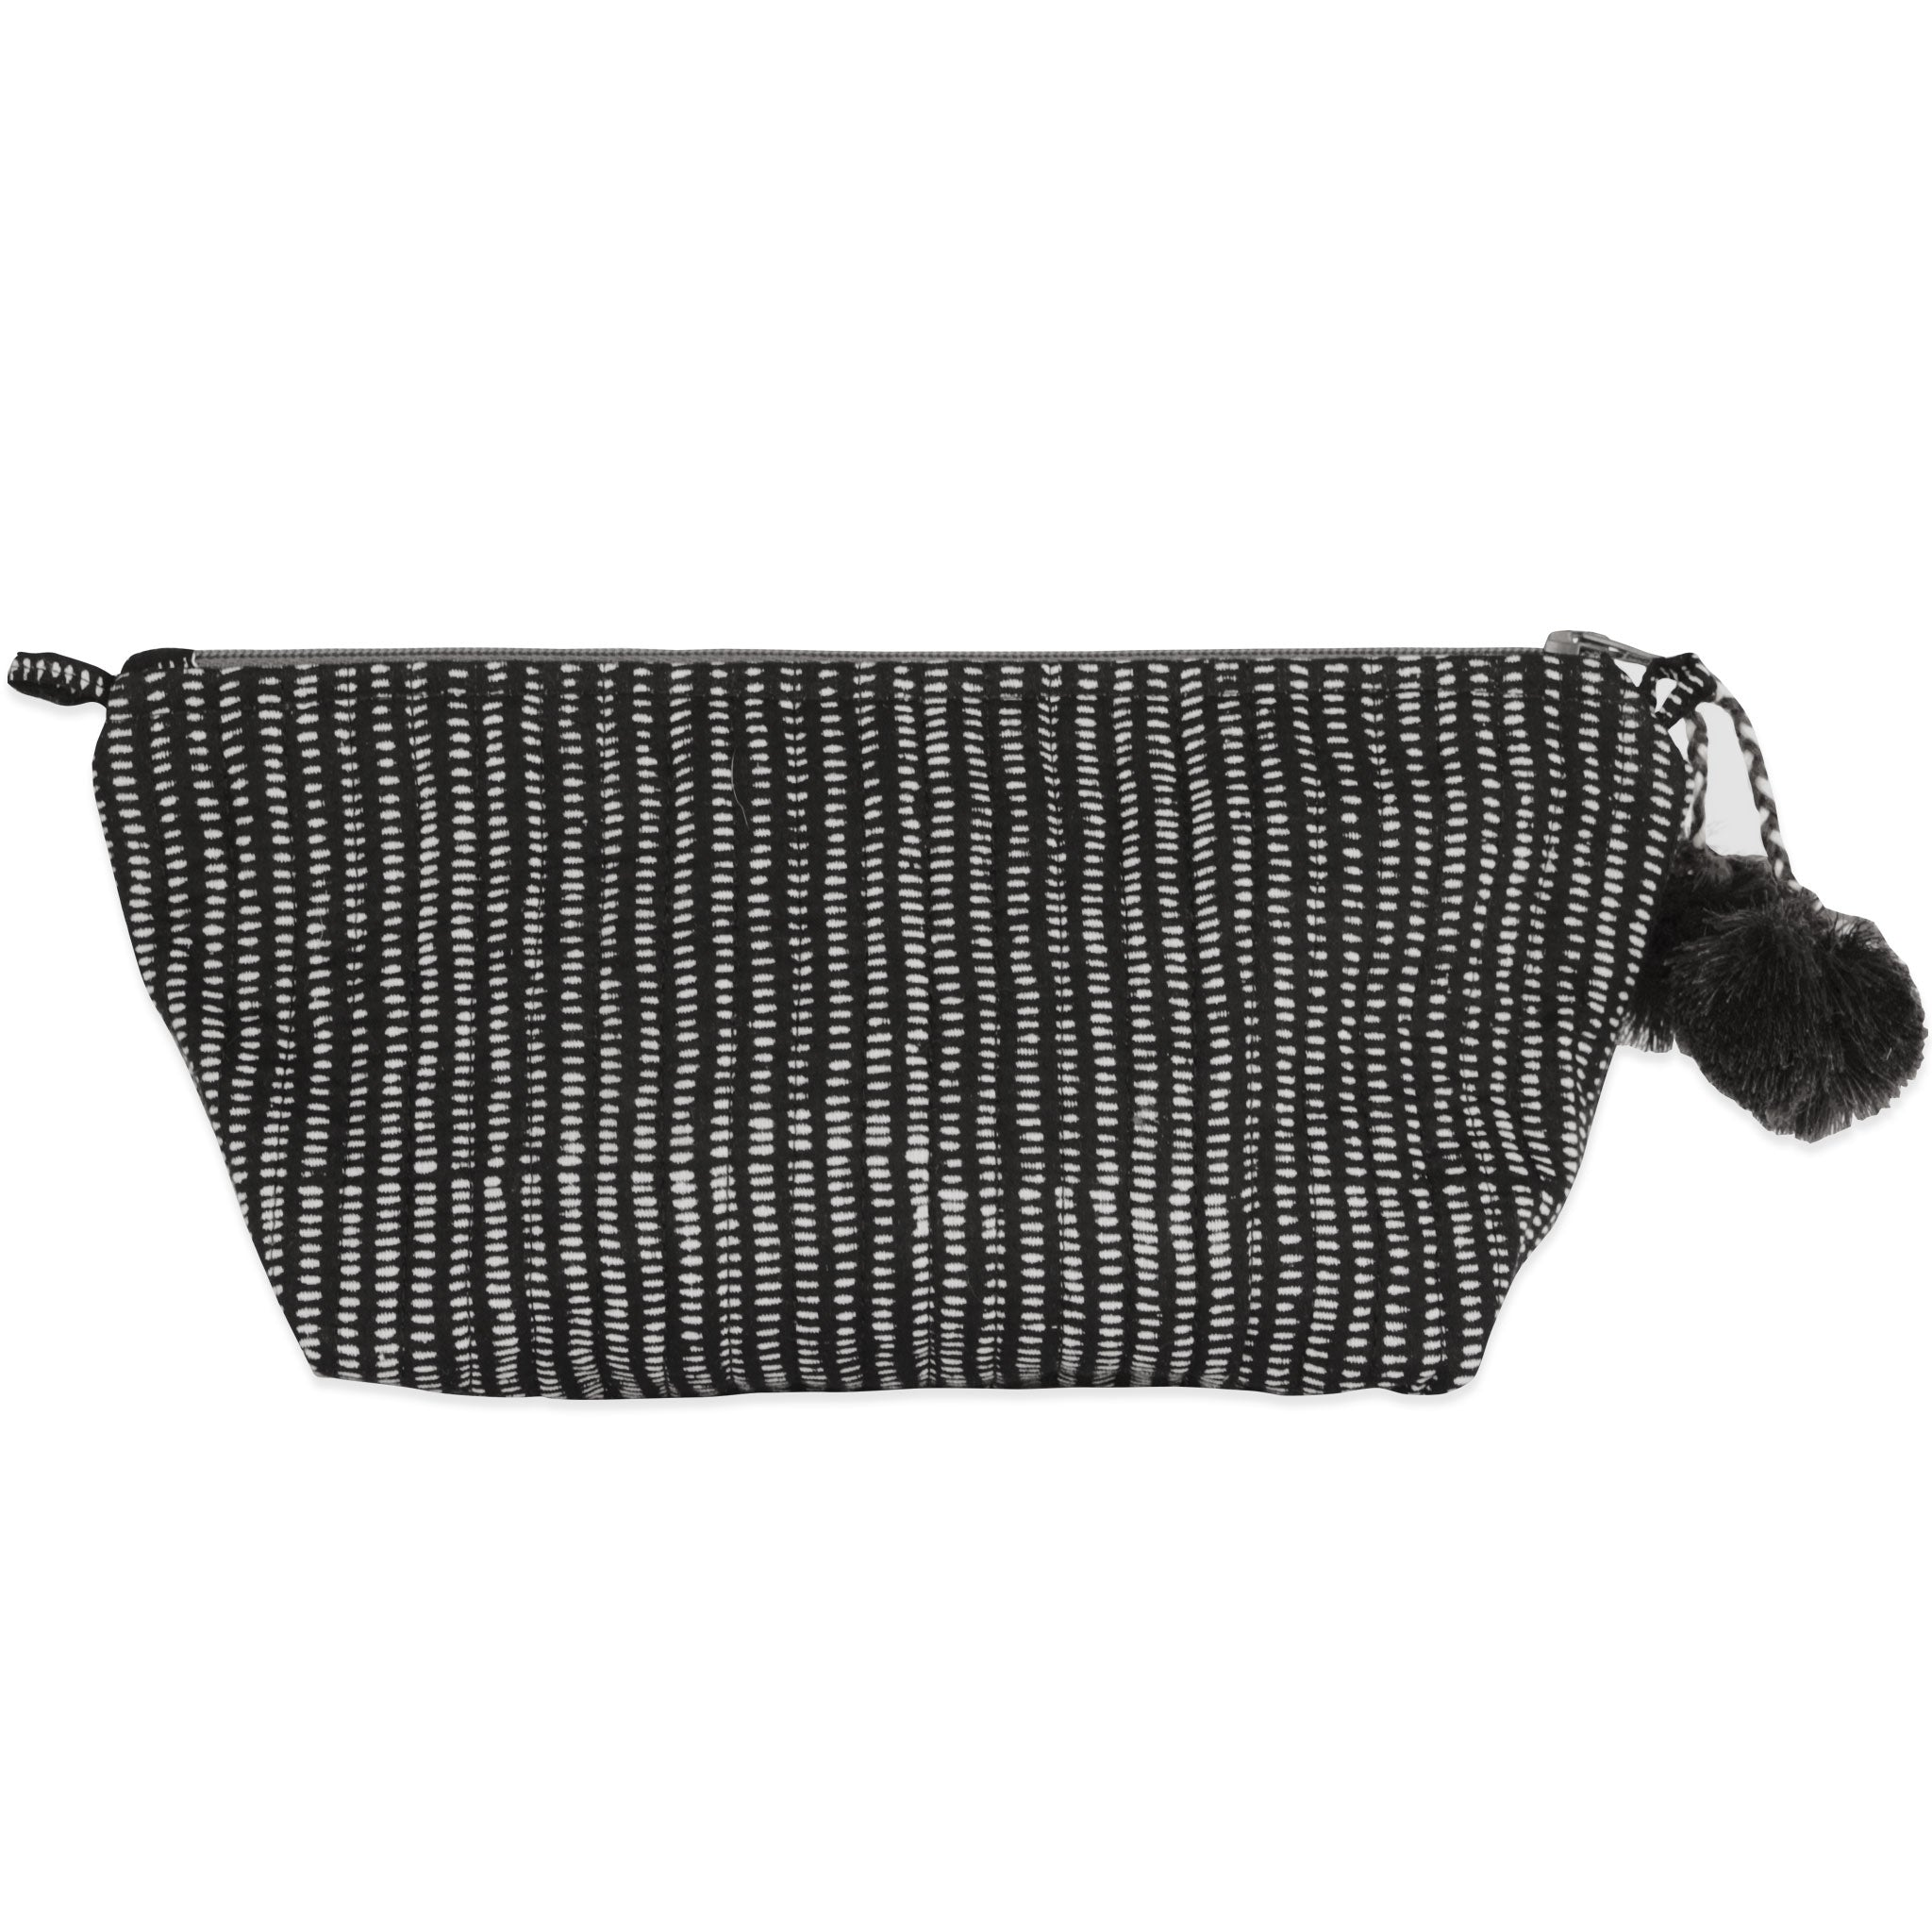 Alice Stripes Midnight Block Printed Makeup Pouch